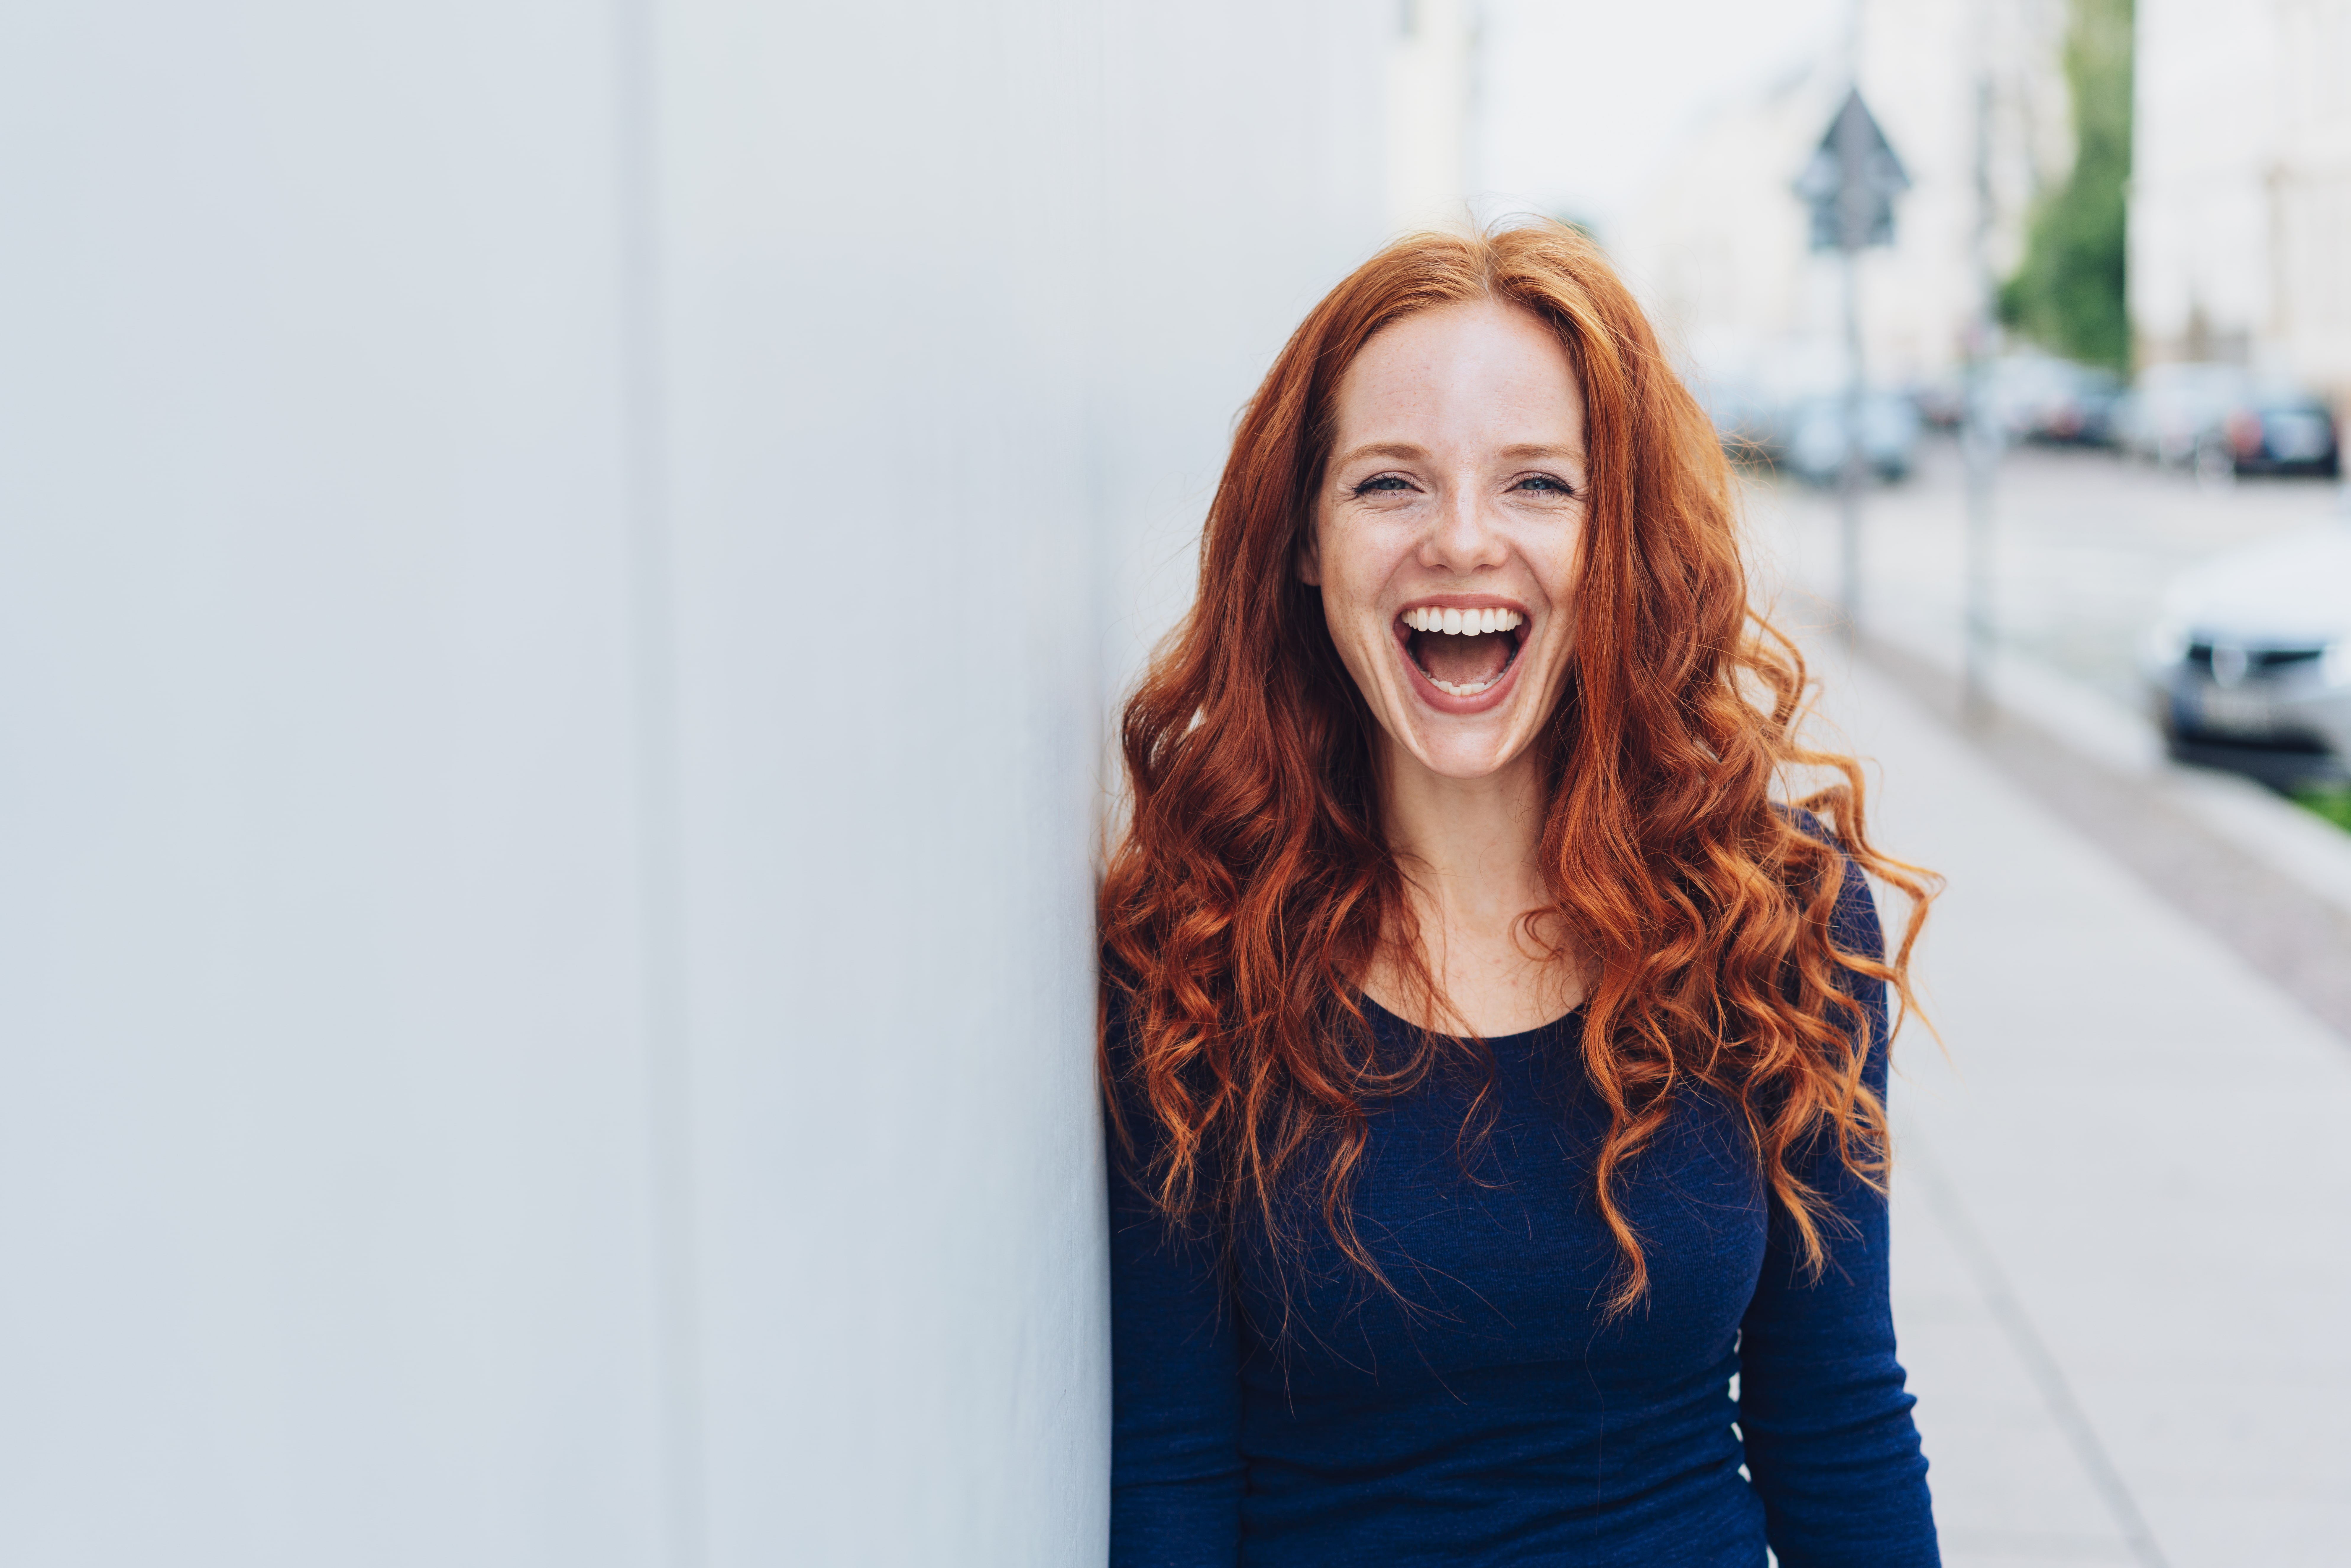 A woman with a wide open smile, curly red hair, and bright blue shirt leaning against a white wall with a city street in the background